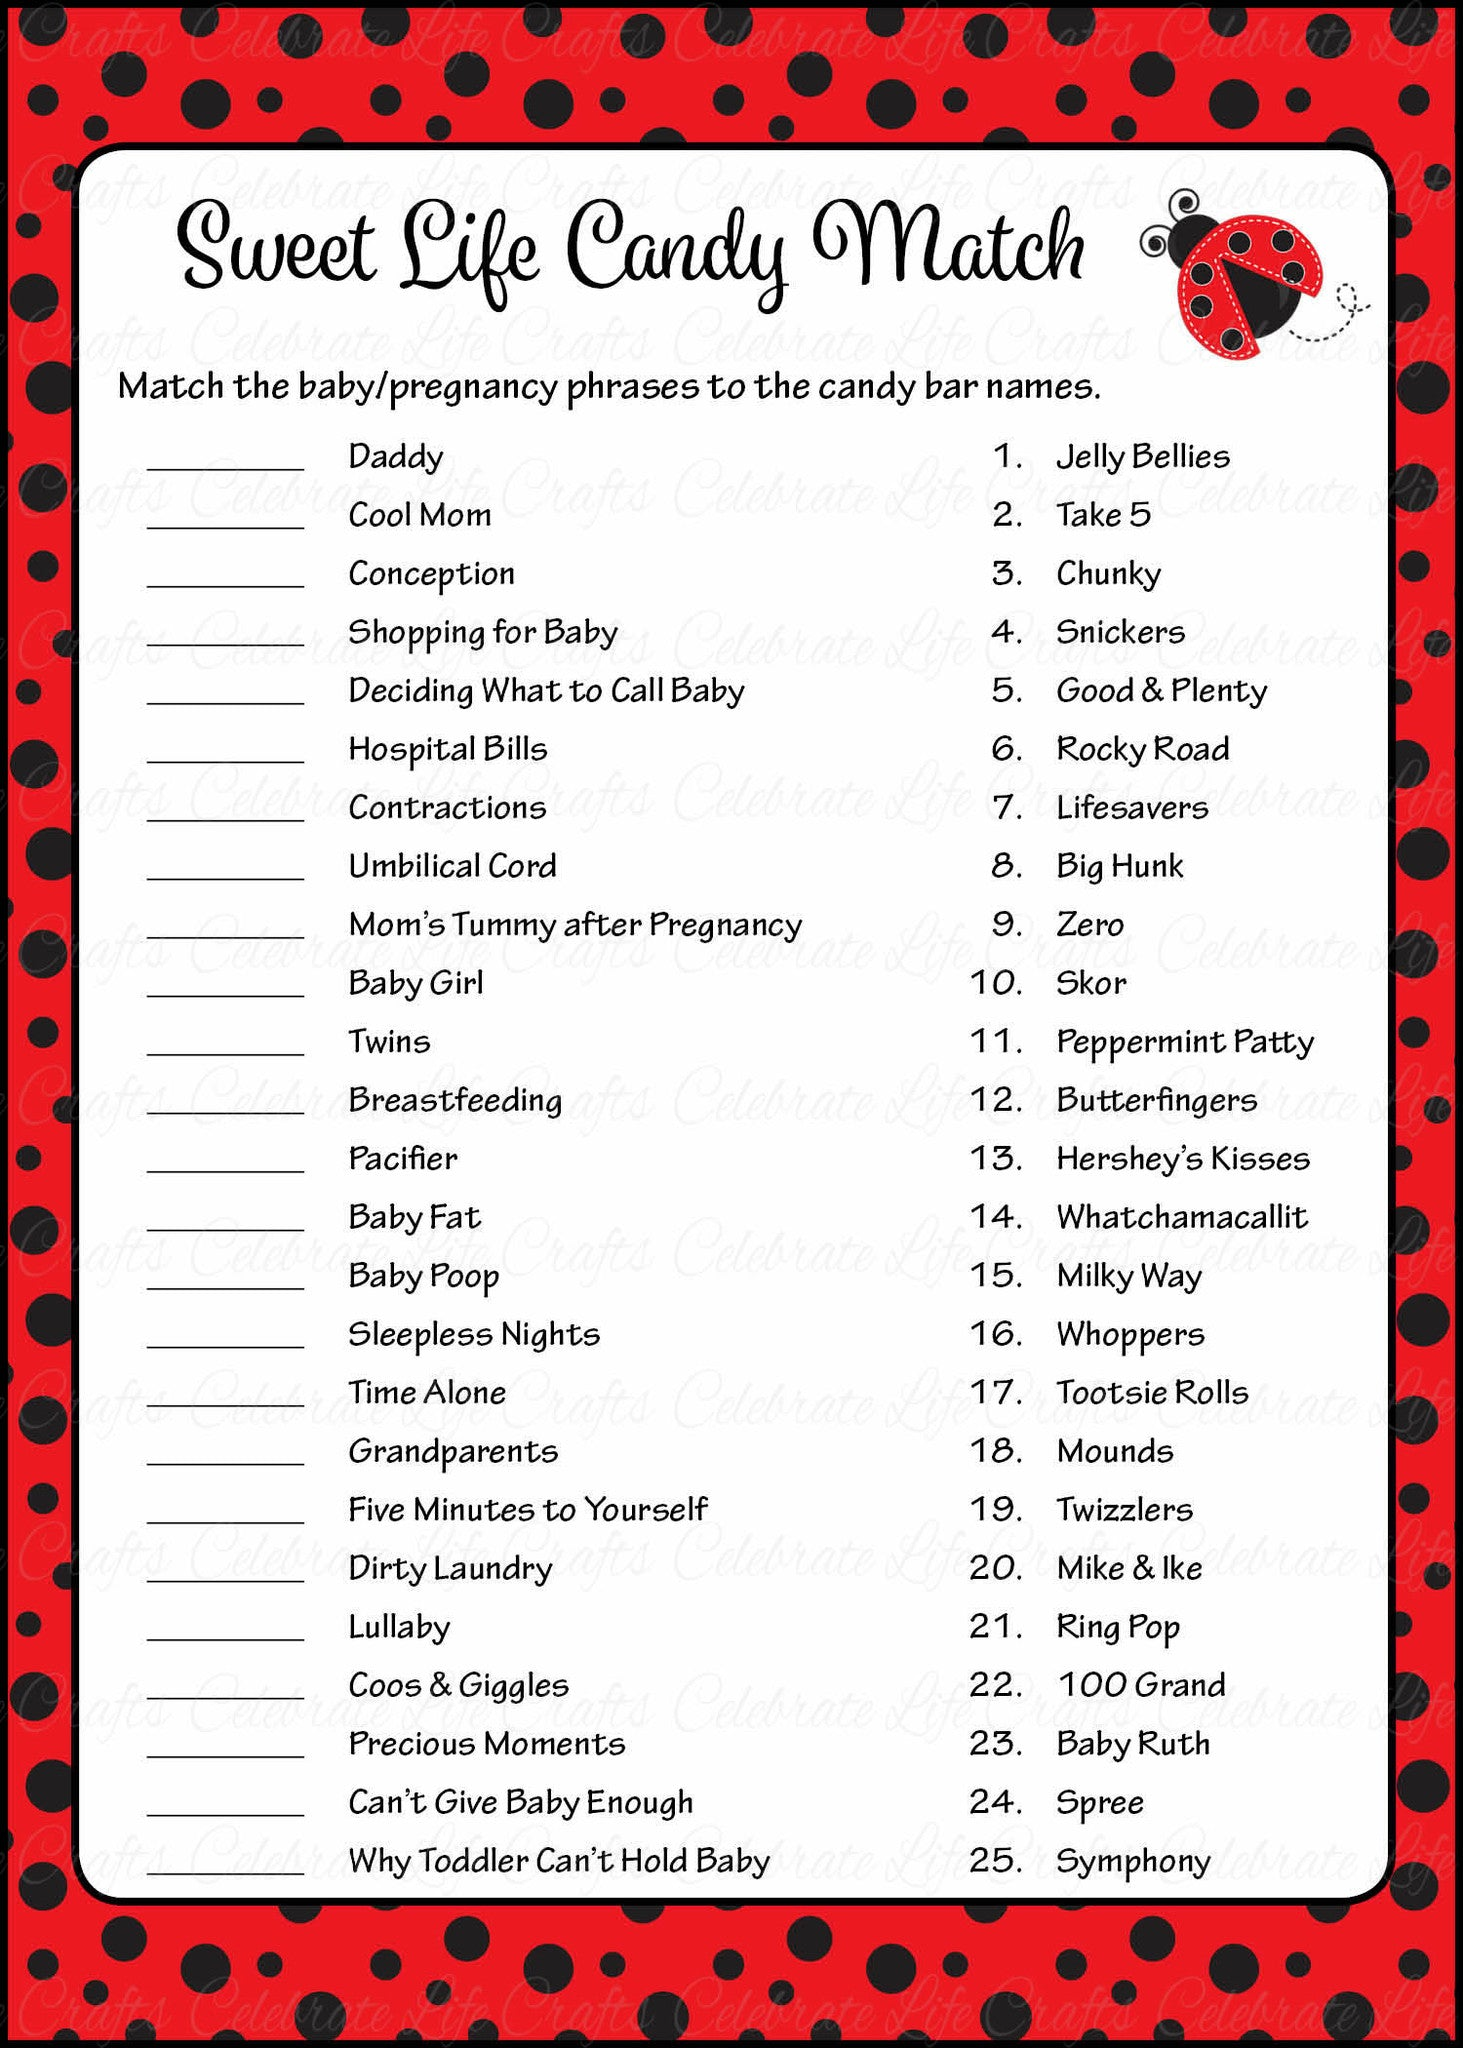 Sweet Life Candy Match Game   Printable Download   Red Black Ladybug Baby  Shower Game   B10002.